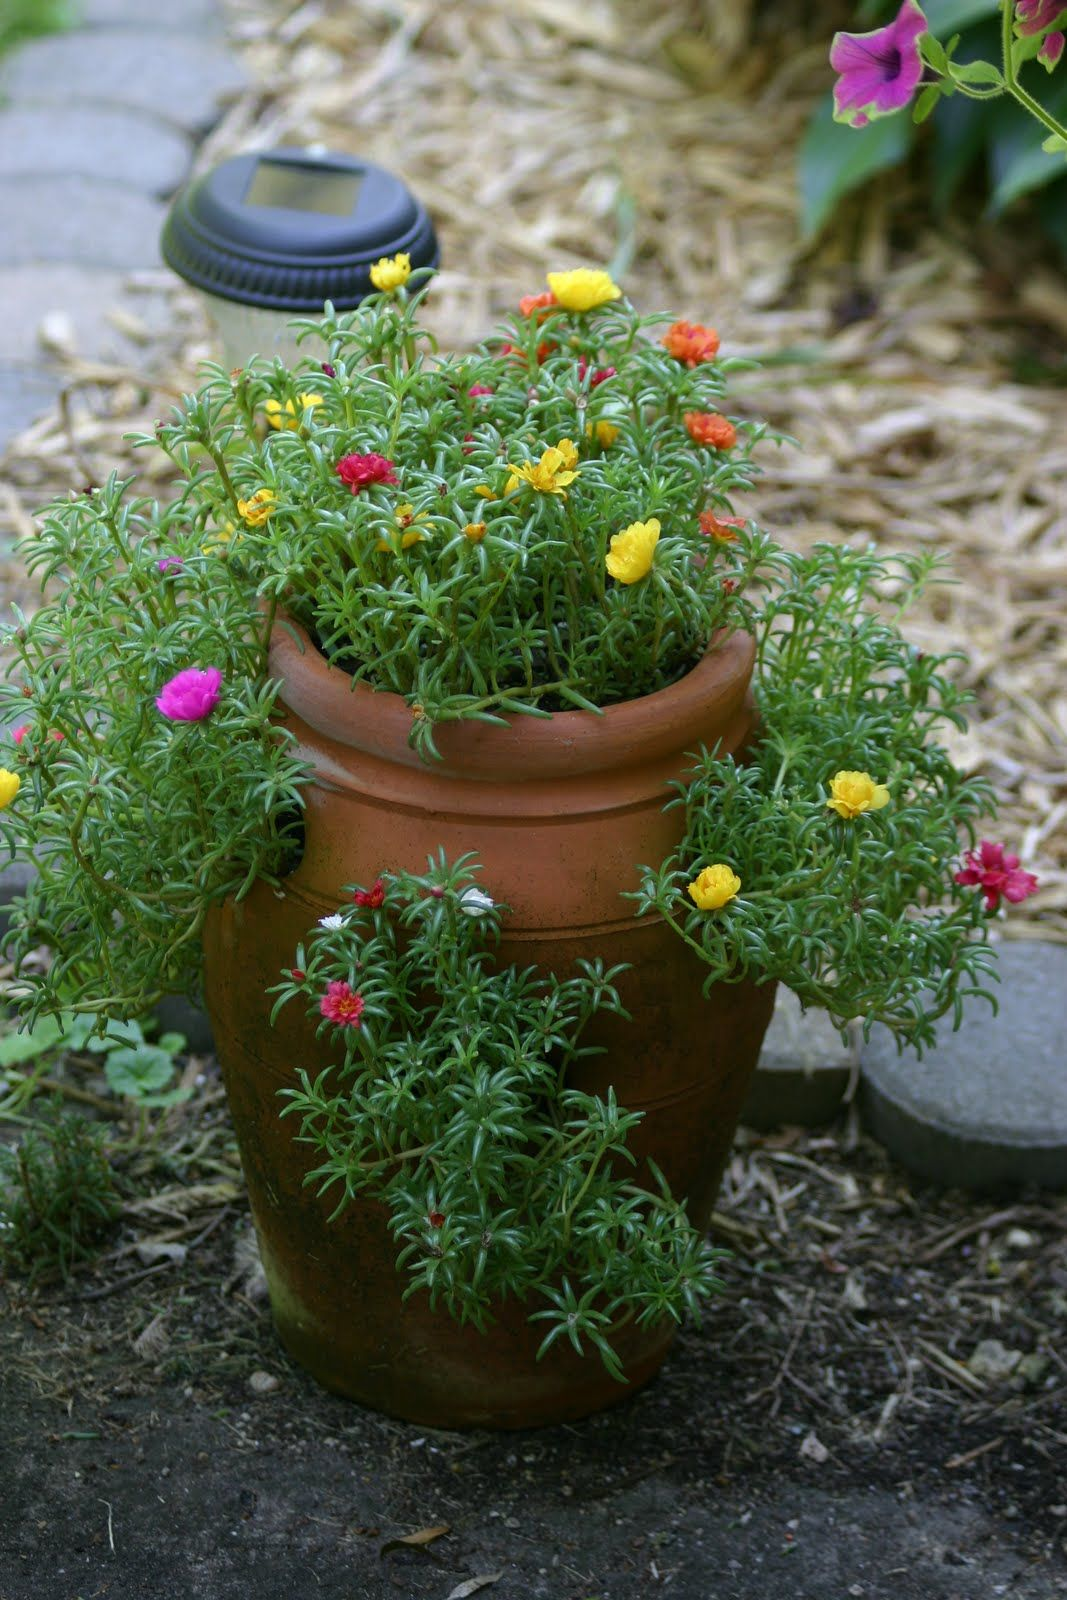 Pin by Beckey Douglas on moss rose, portulaca Growing